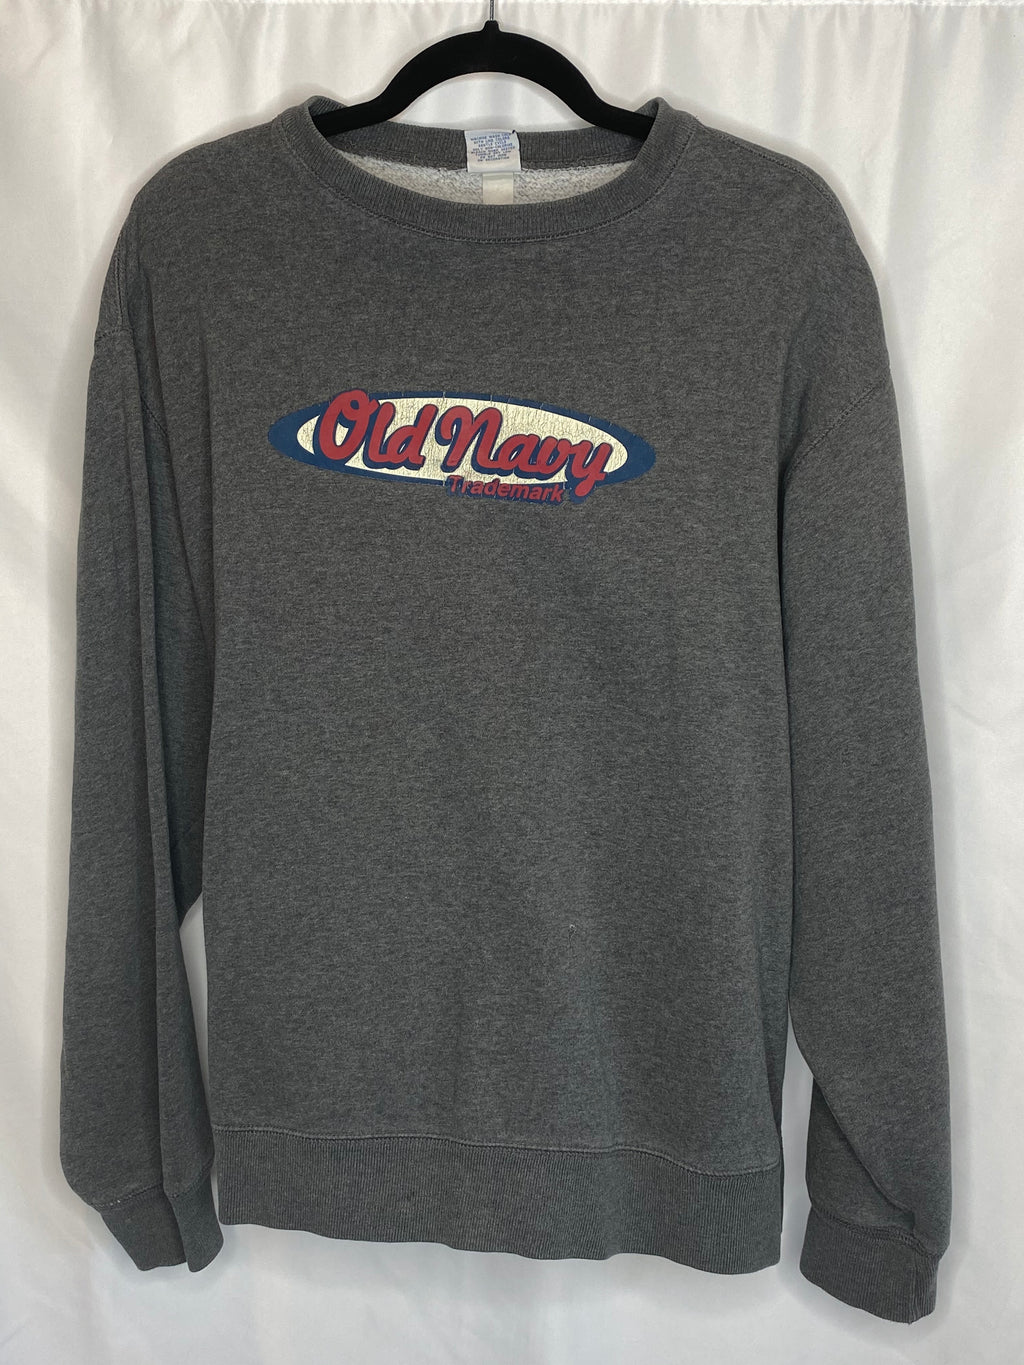 old navy vintage sweatshirt